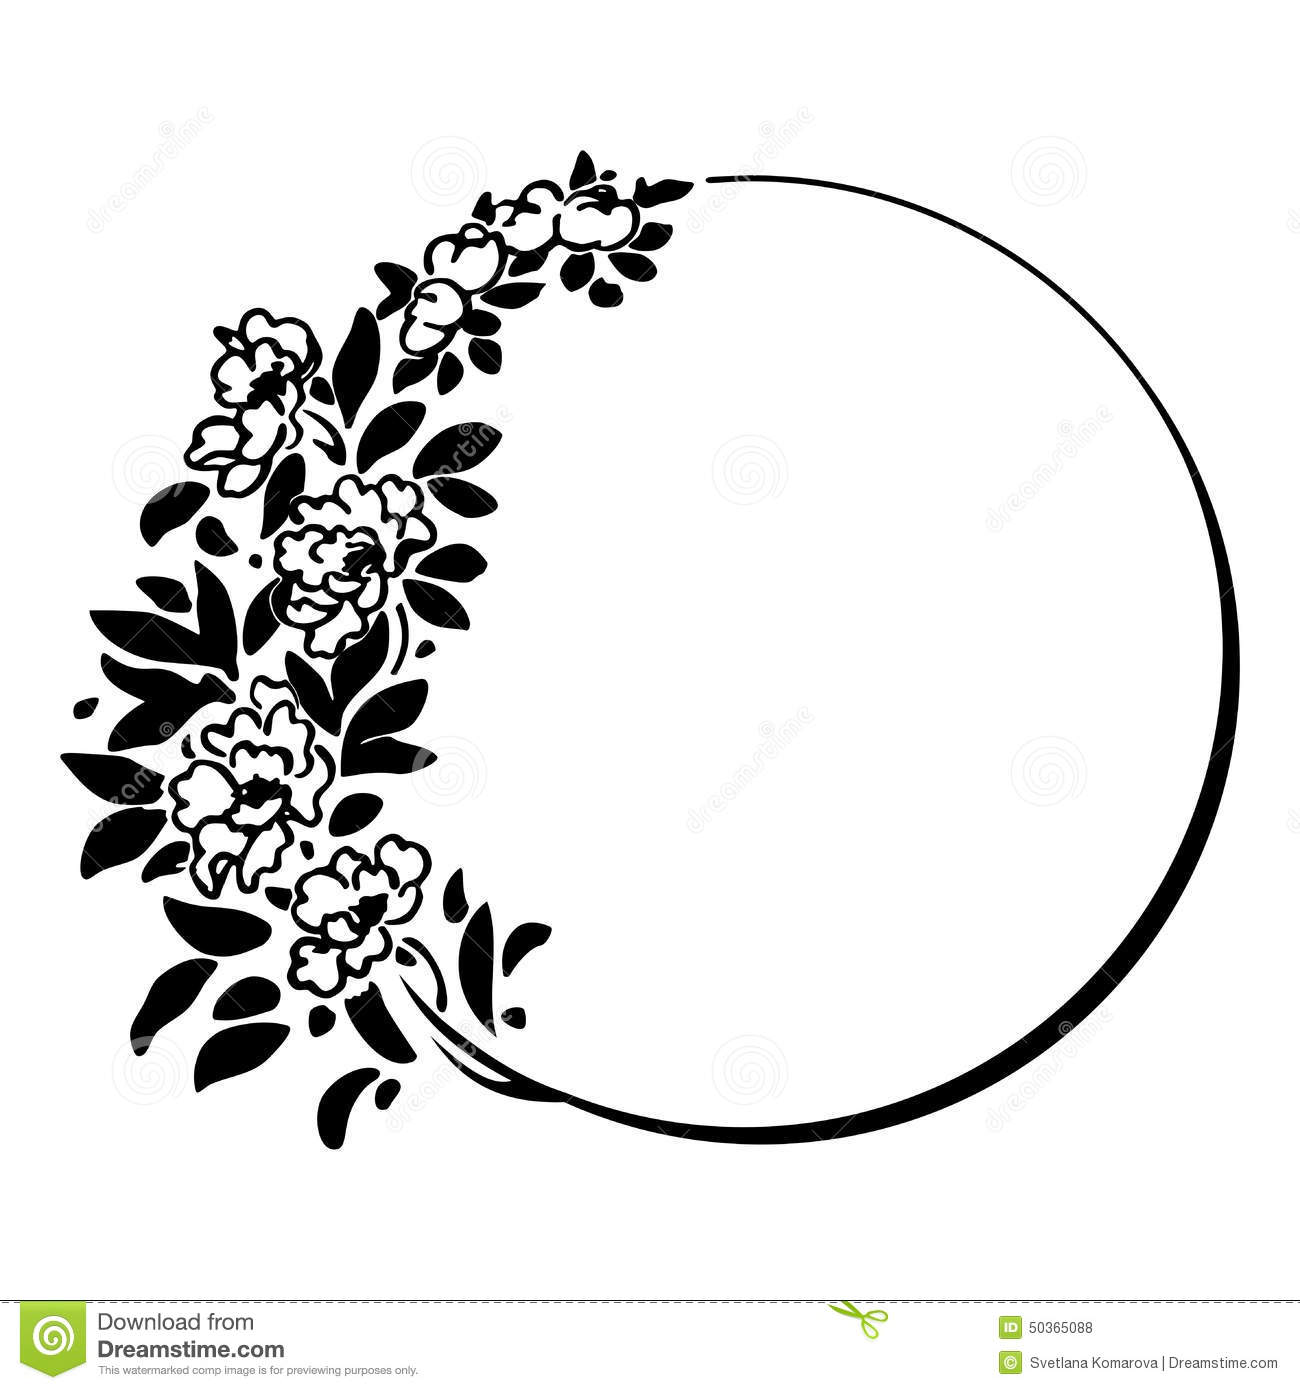 Round frame with decorative branch vector illustration stock - Branch Decorative Floral Frame Round